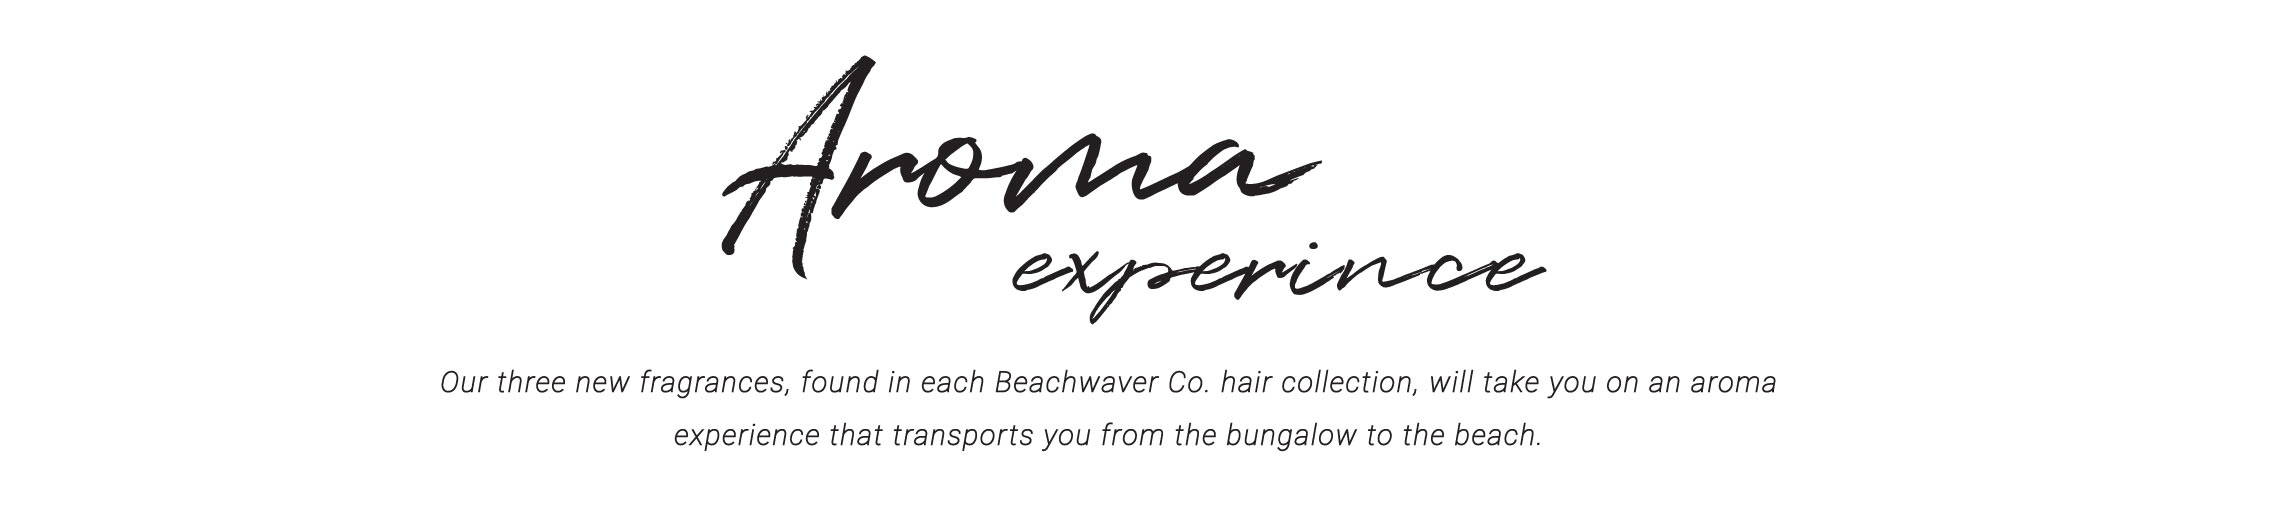 B. Bungalow and Beachwaver Co. Aroma Experience - Our three new fragrances, found in each Beachwaver Co. hair collection will take you on an aroma experience that transports you from the bungalow to the beach.